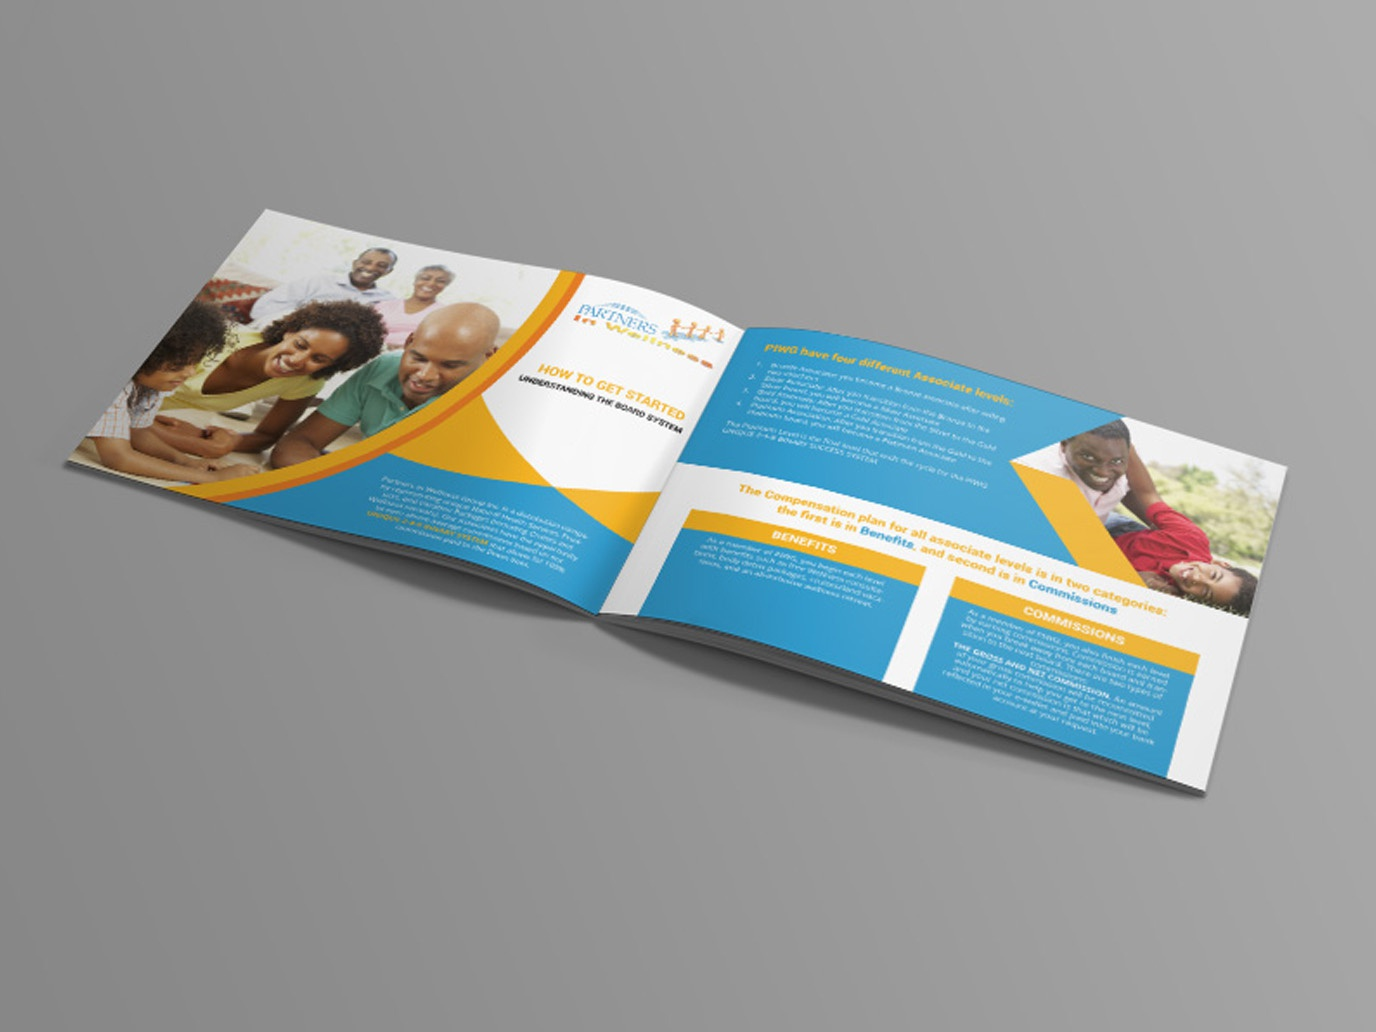 Brochure Design company profile event flyer fashion voucher invoice postcard letterhead photoshop action corporate brochure logo calendar business card trifold brochure mockup brochure flyer